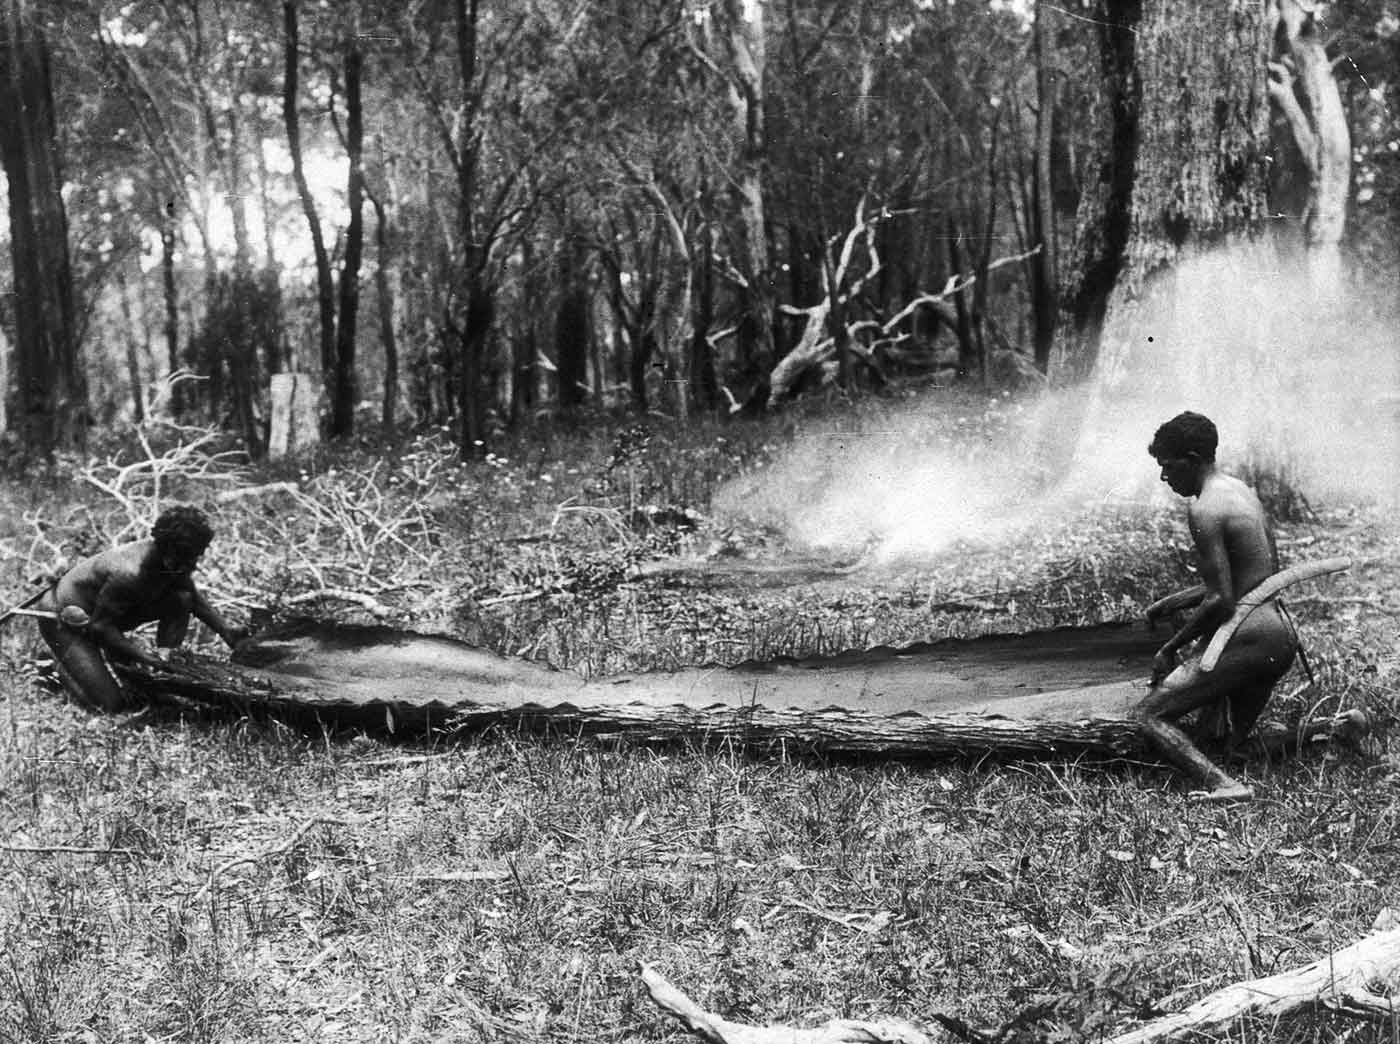 Black and white photograph of two men working with a large piece of bark which is lying on the ground in a forest opening. - click to view larger image